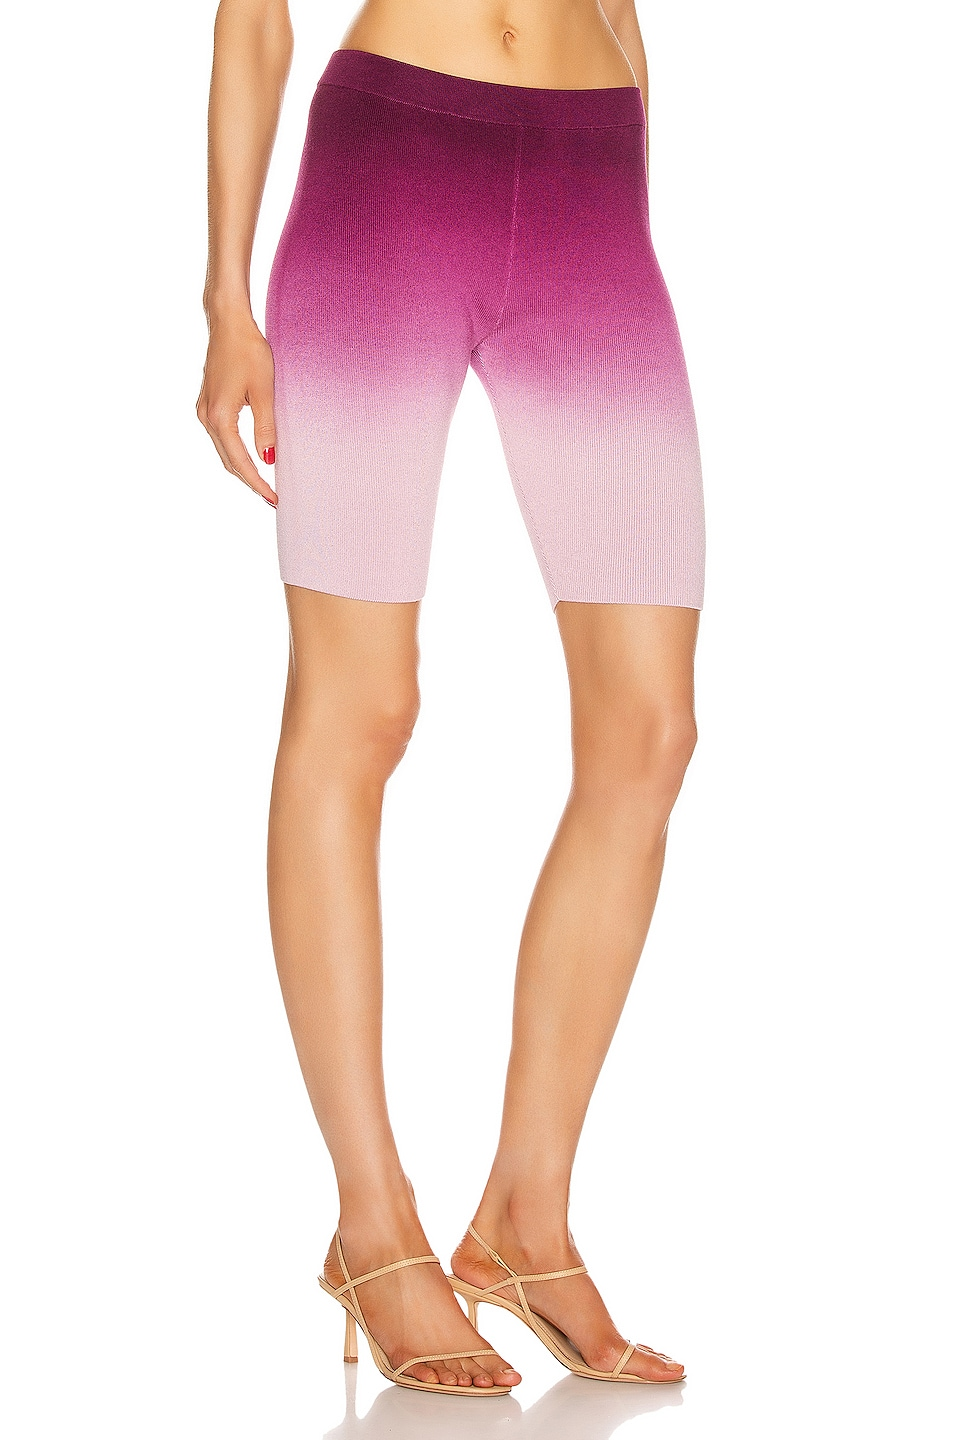 Image 2 of JONATHAN SIMKHAI Ombre Compact Knit Biker Short in Magenta Ombre